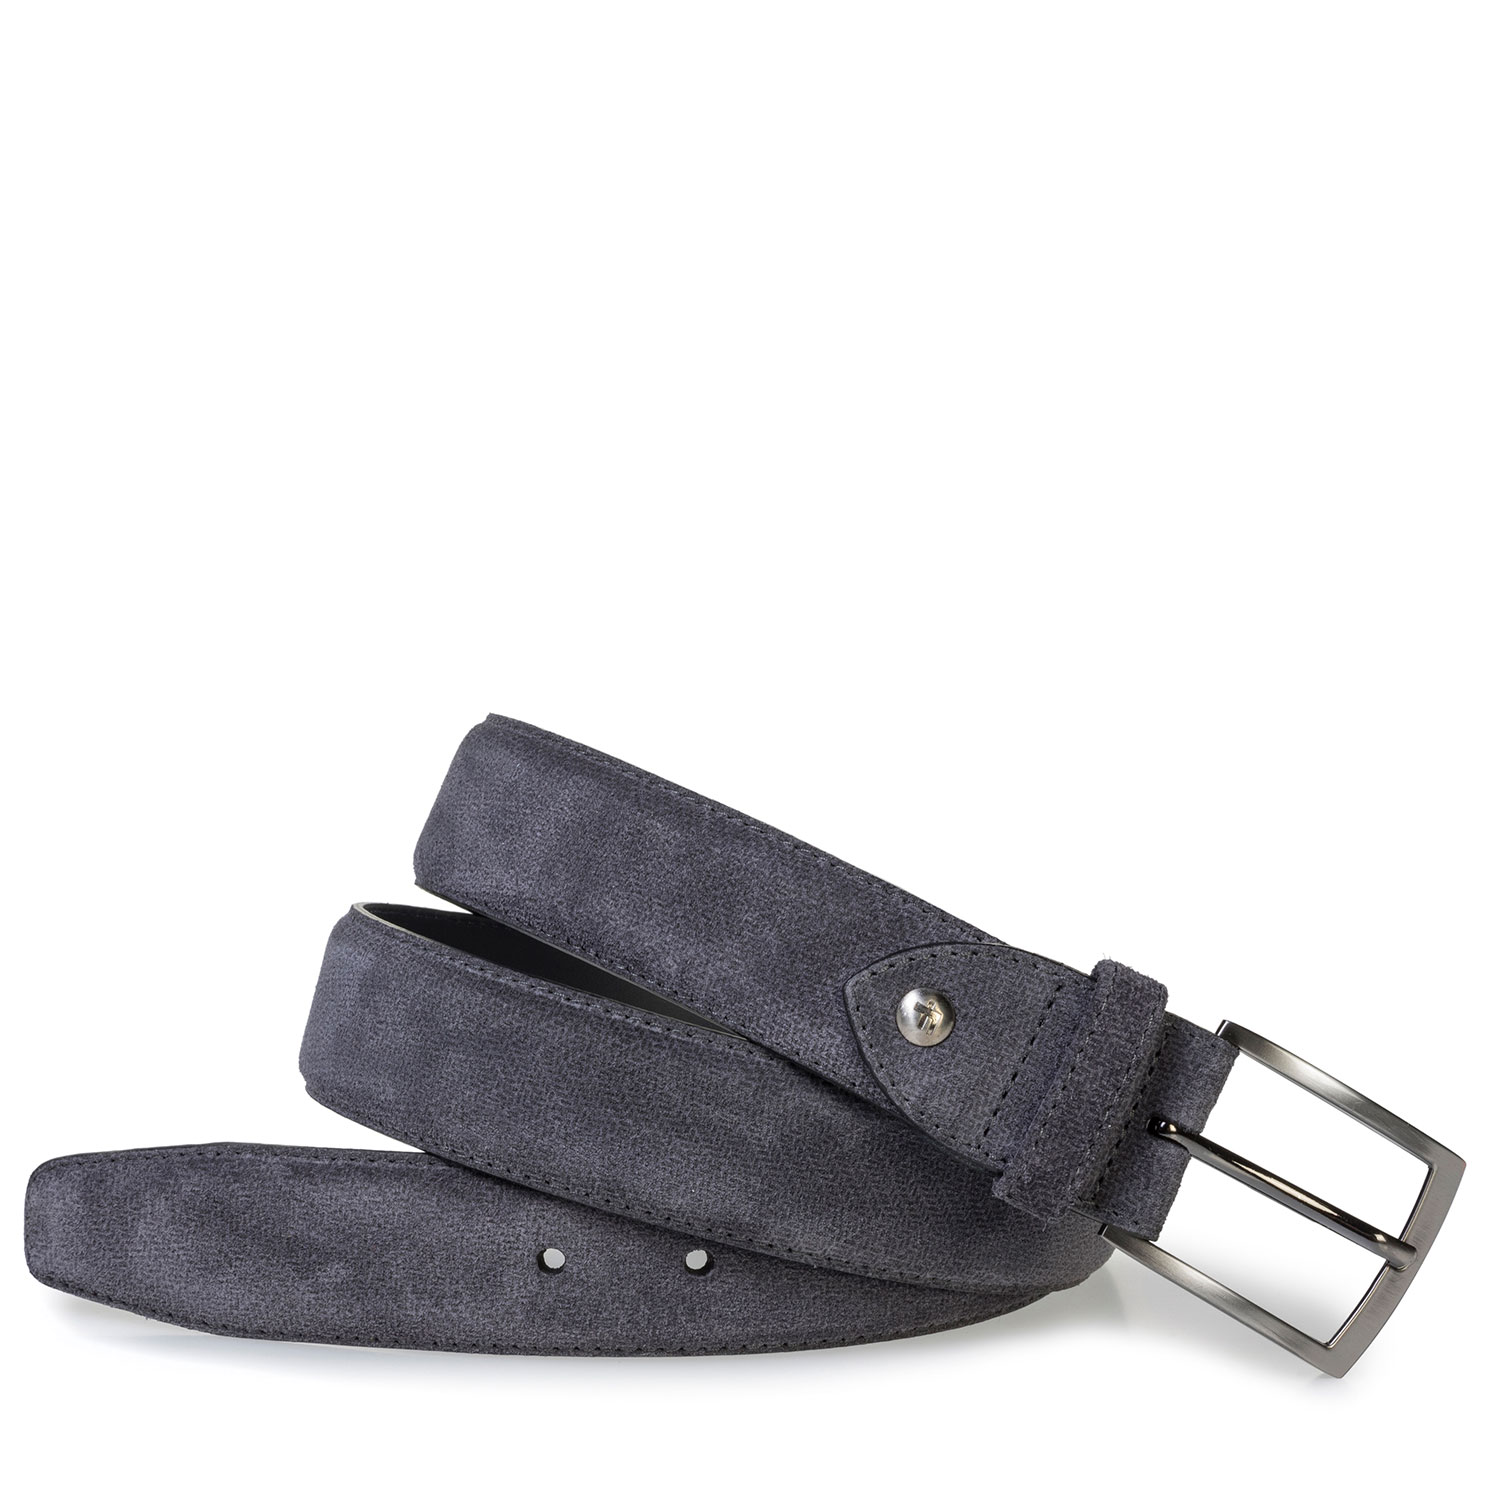 75201/71 - Dark grey suede leather belt with print